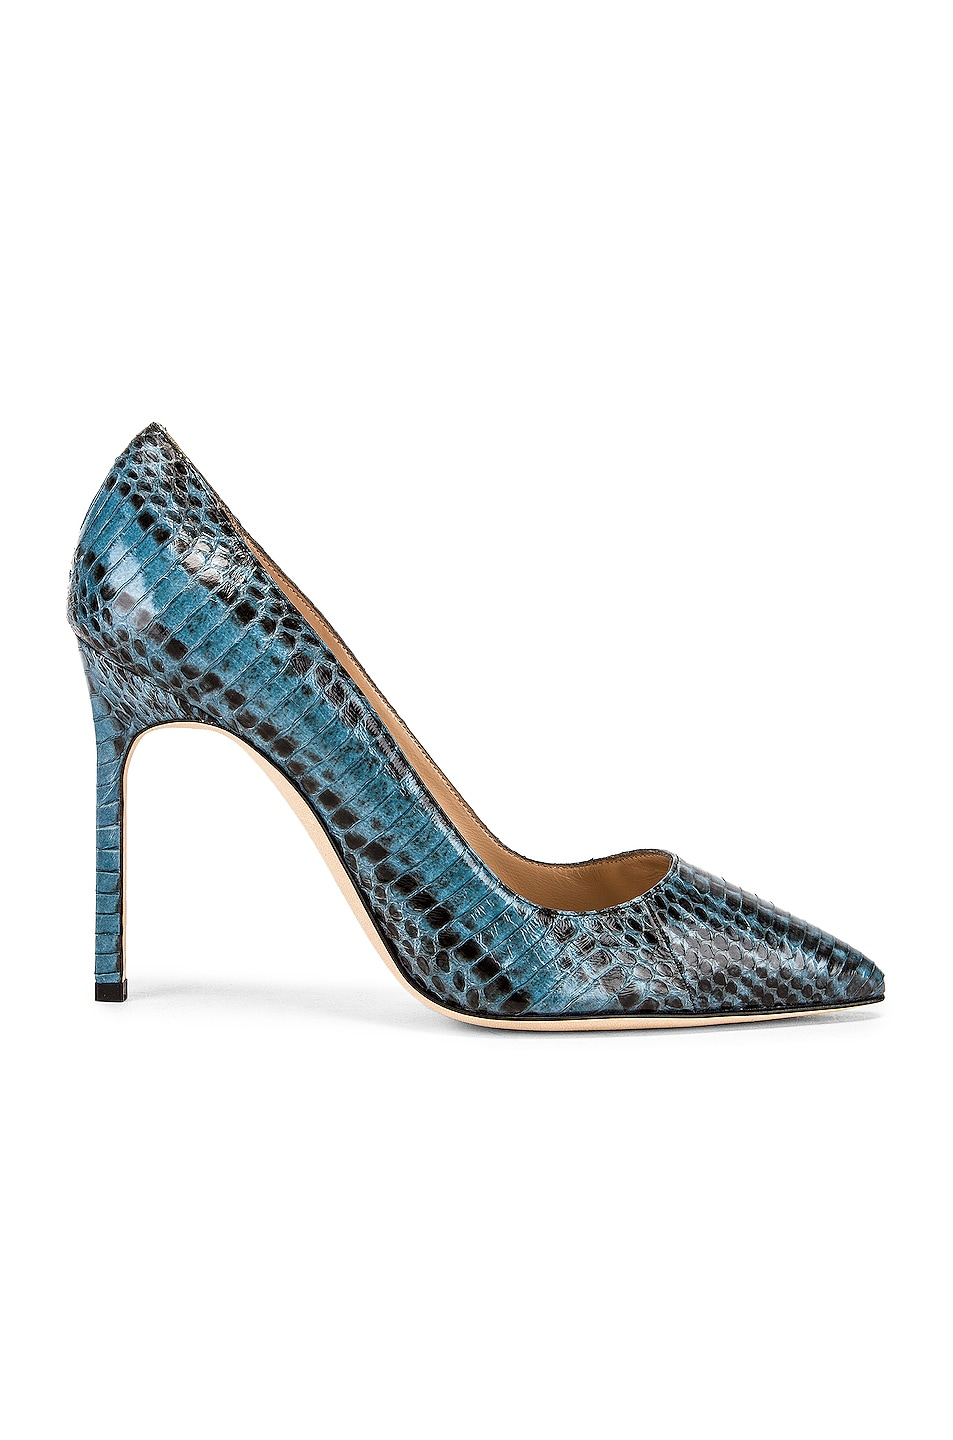 Image 1 of Manolo Blahnik BB 105 Pump in Blue Snake